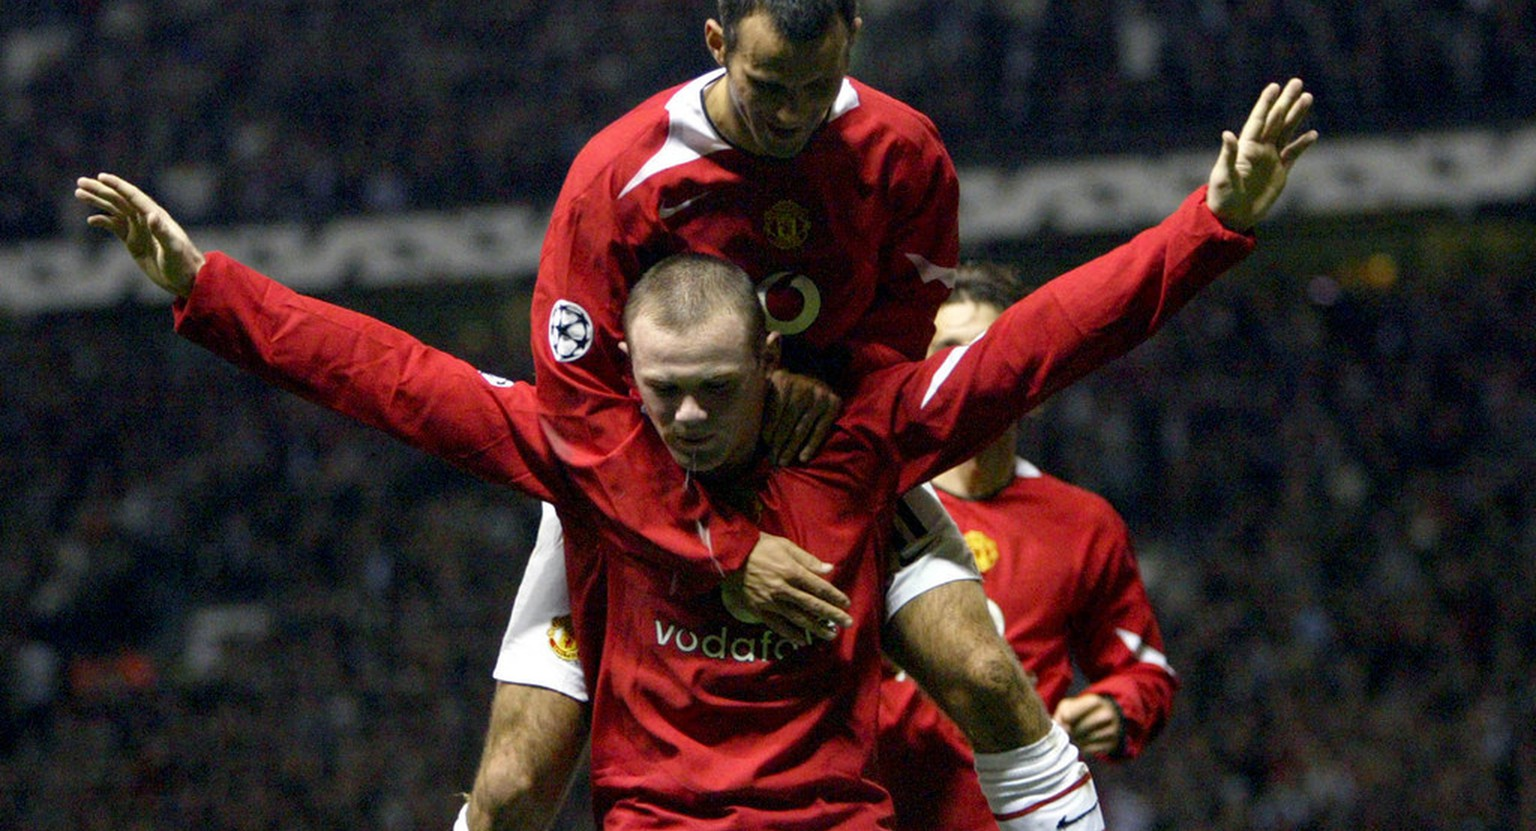 Manchester United's Wayne Rooney, center, is congratulated by teammate Ryan Giggs after scoring his second goal on his debut against Fenerbahce during their Champion's League group D soccer match at Old Trafford Stadium, Manchester England, Tuesday Sept. 28, 2004. (AP Photo/Jon Super)